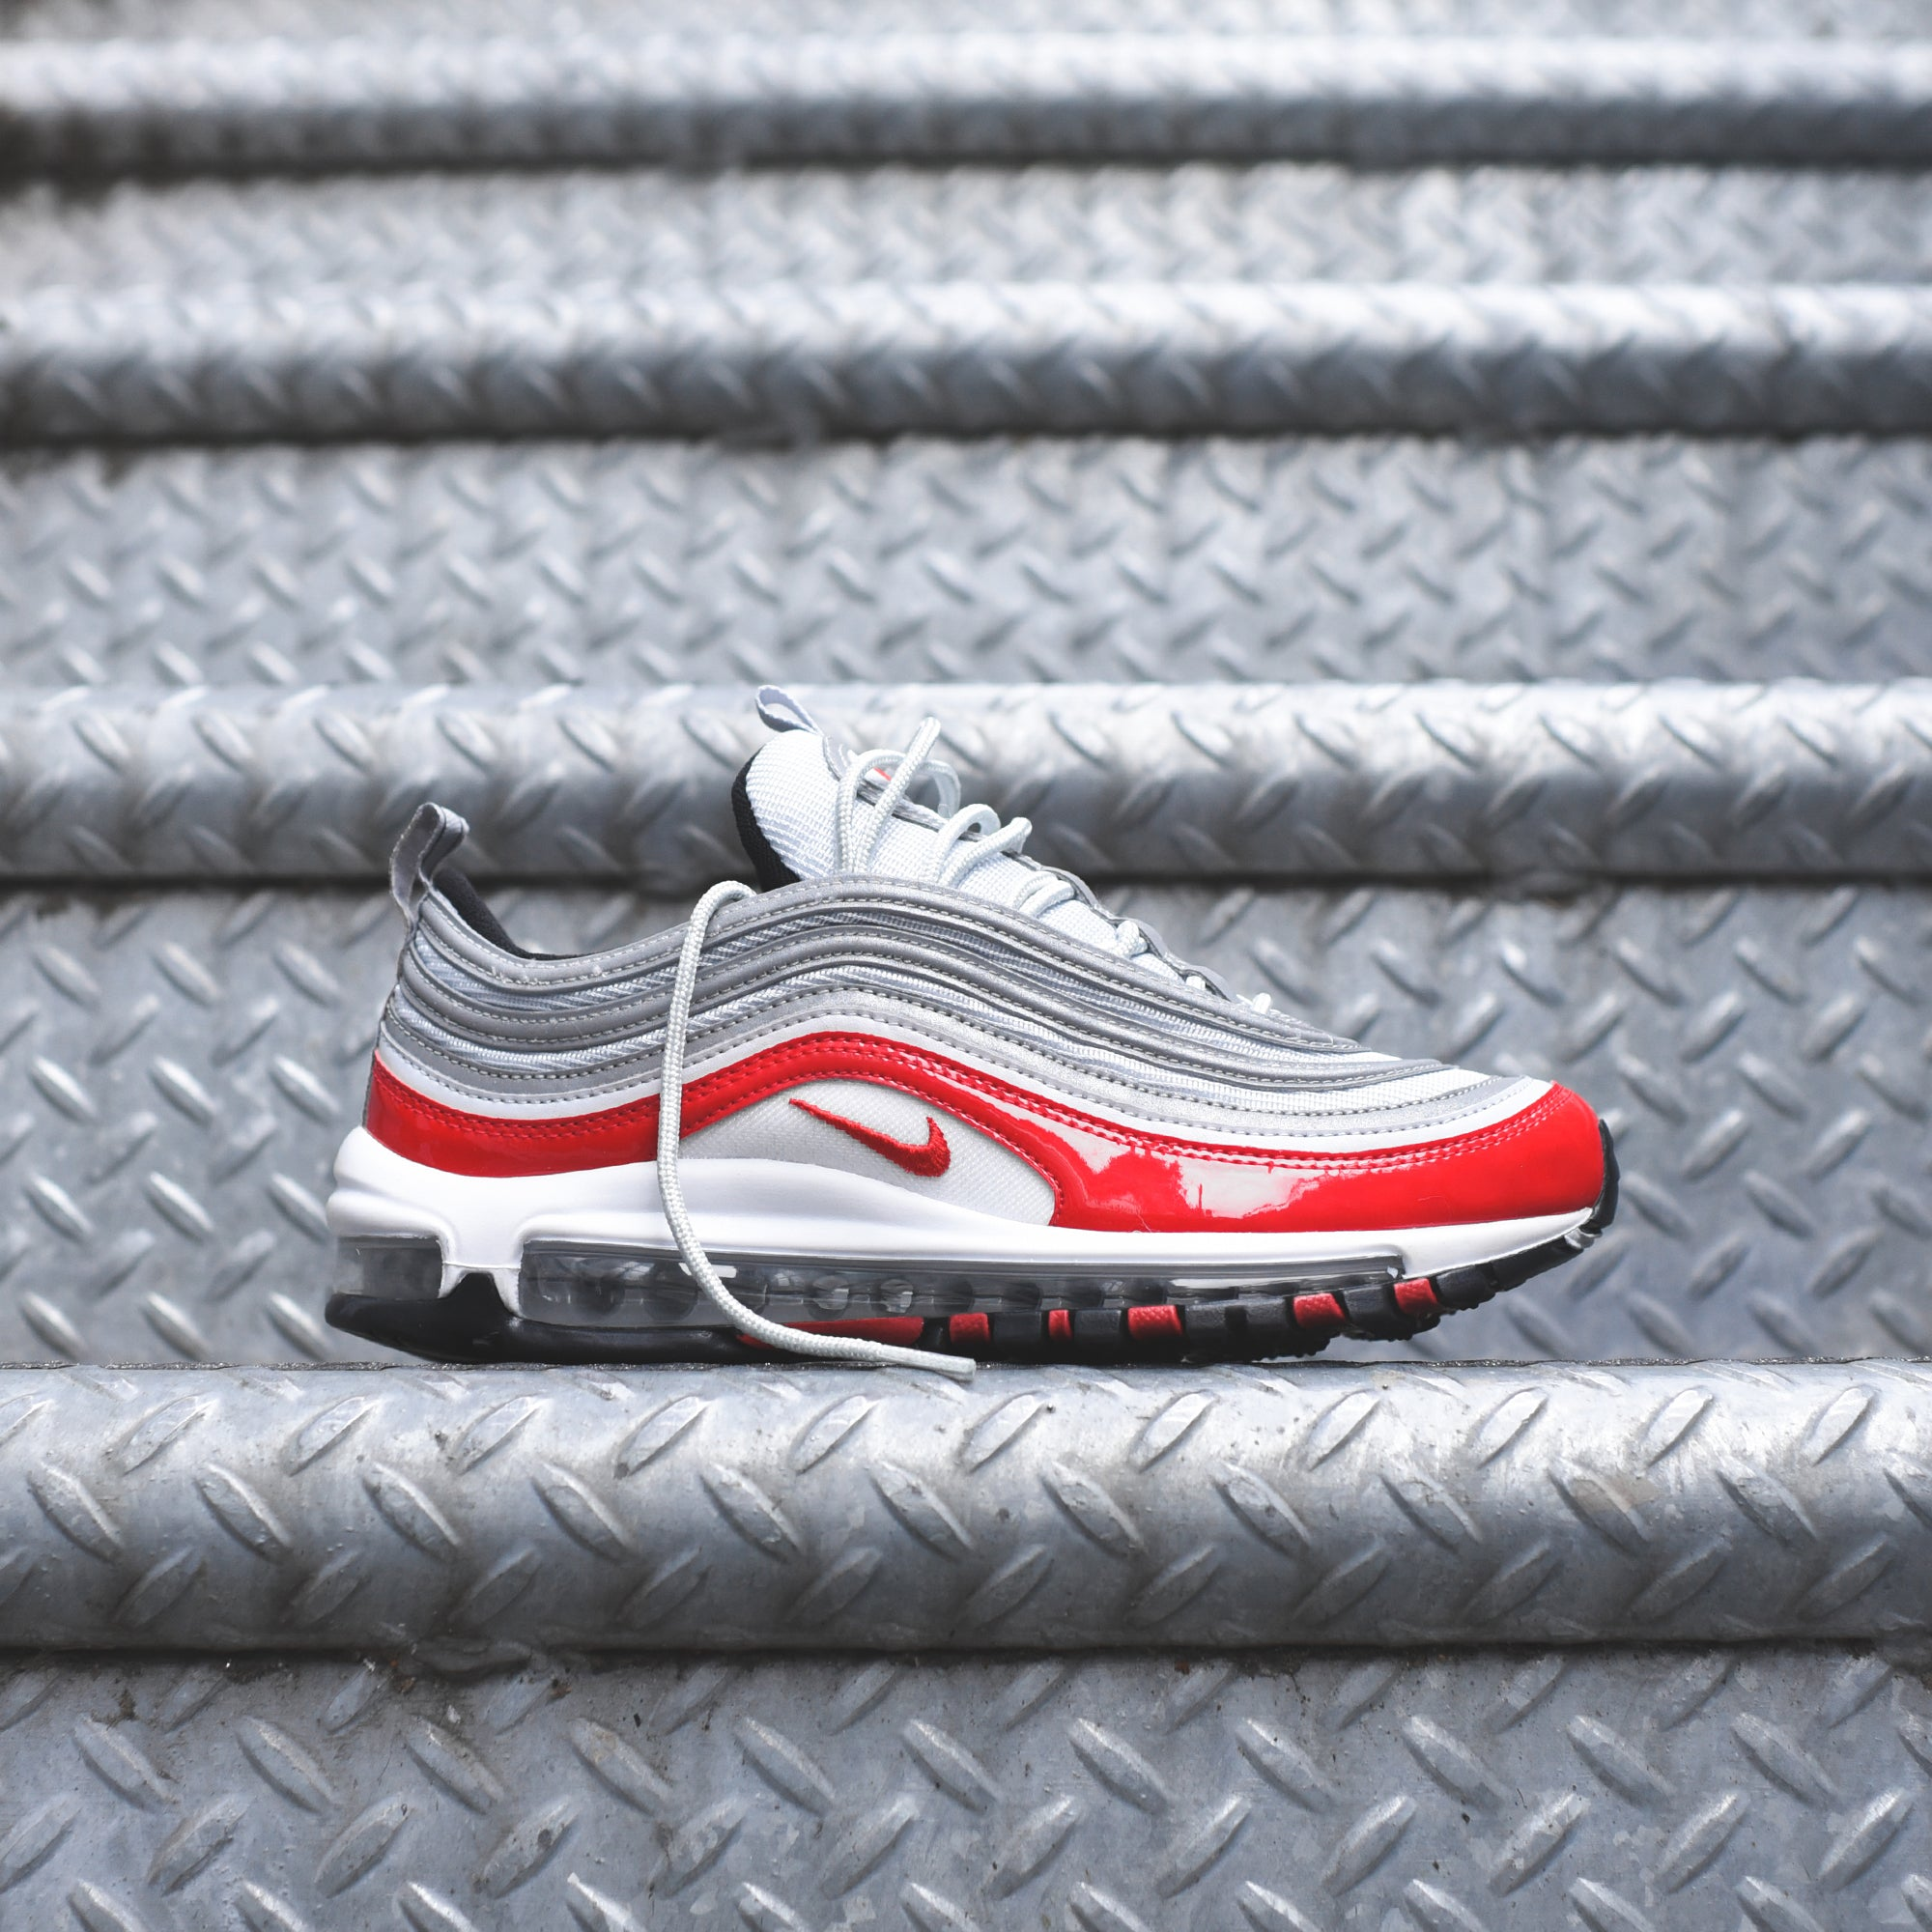 7ad6ab7af0dc3 ... 921826 009 patent leather 2be35 6be51; sweden nike air max 97 pure  platinum university red 331b6 87765